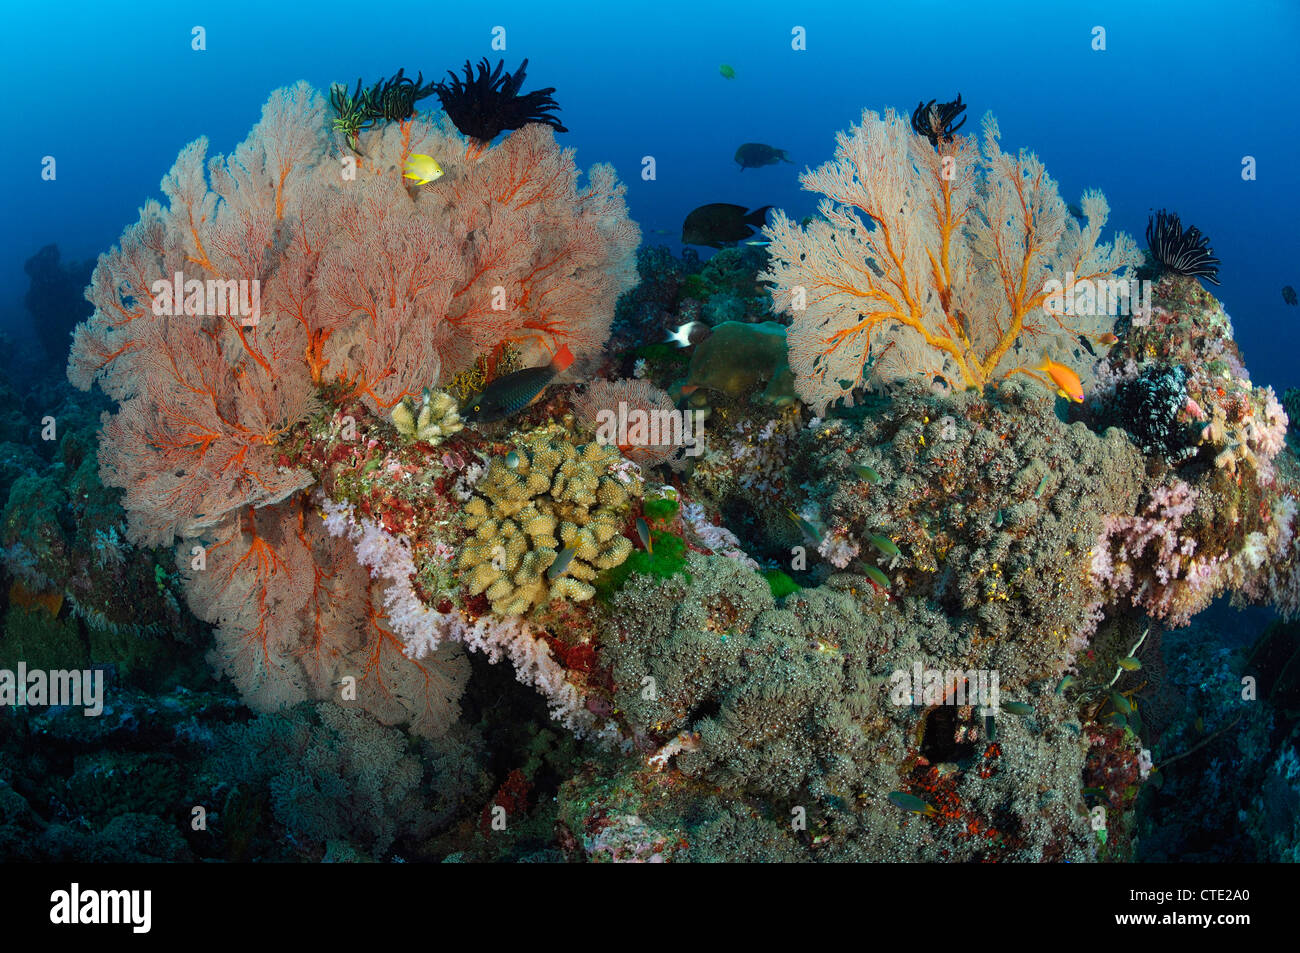 Seafan in Coral Reef, Melithaea sp., Similan Islands, Thailand - Stock Image